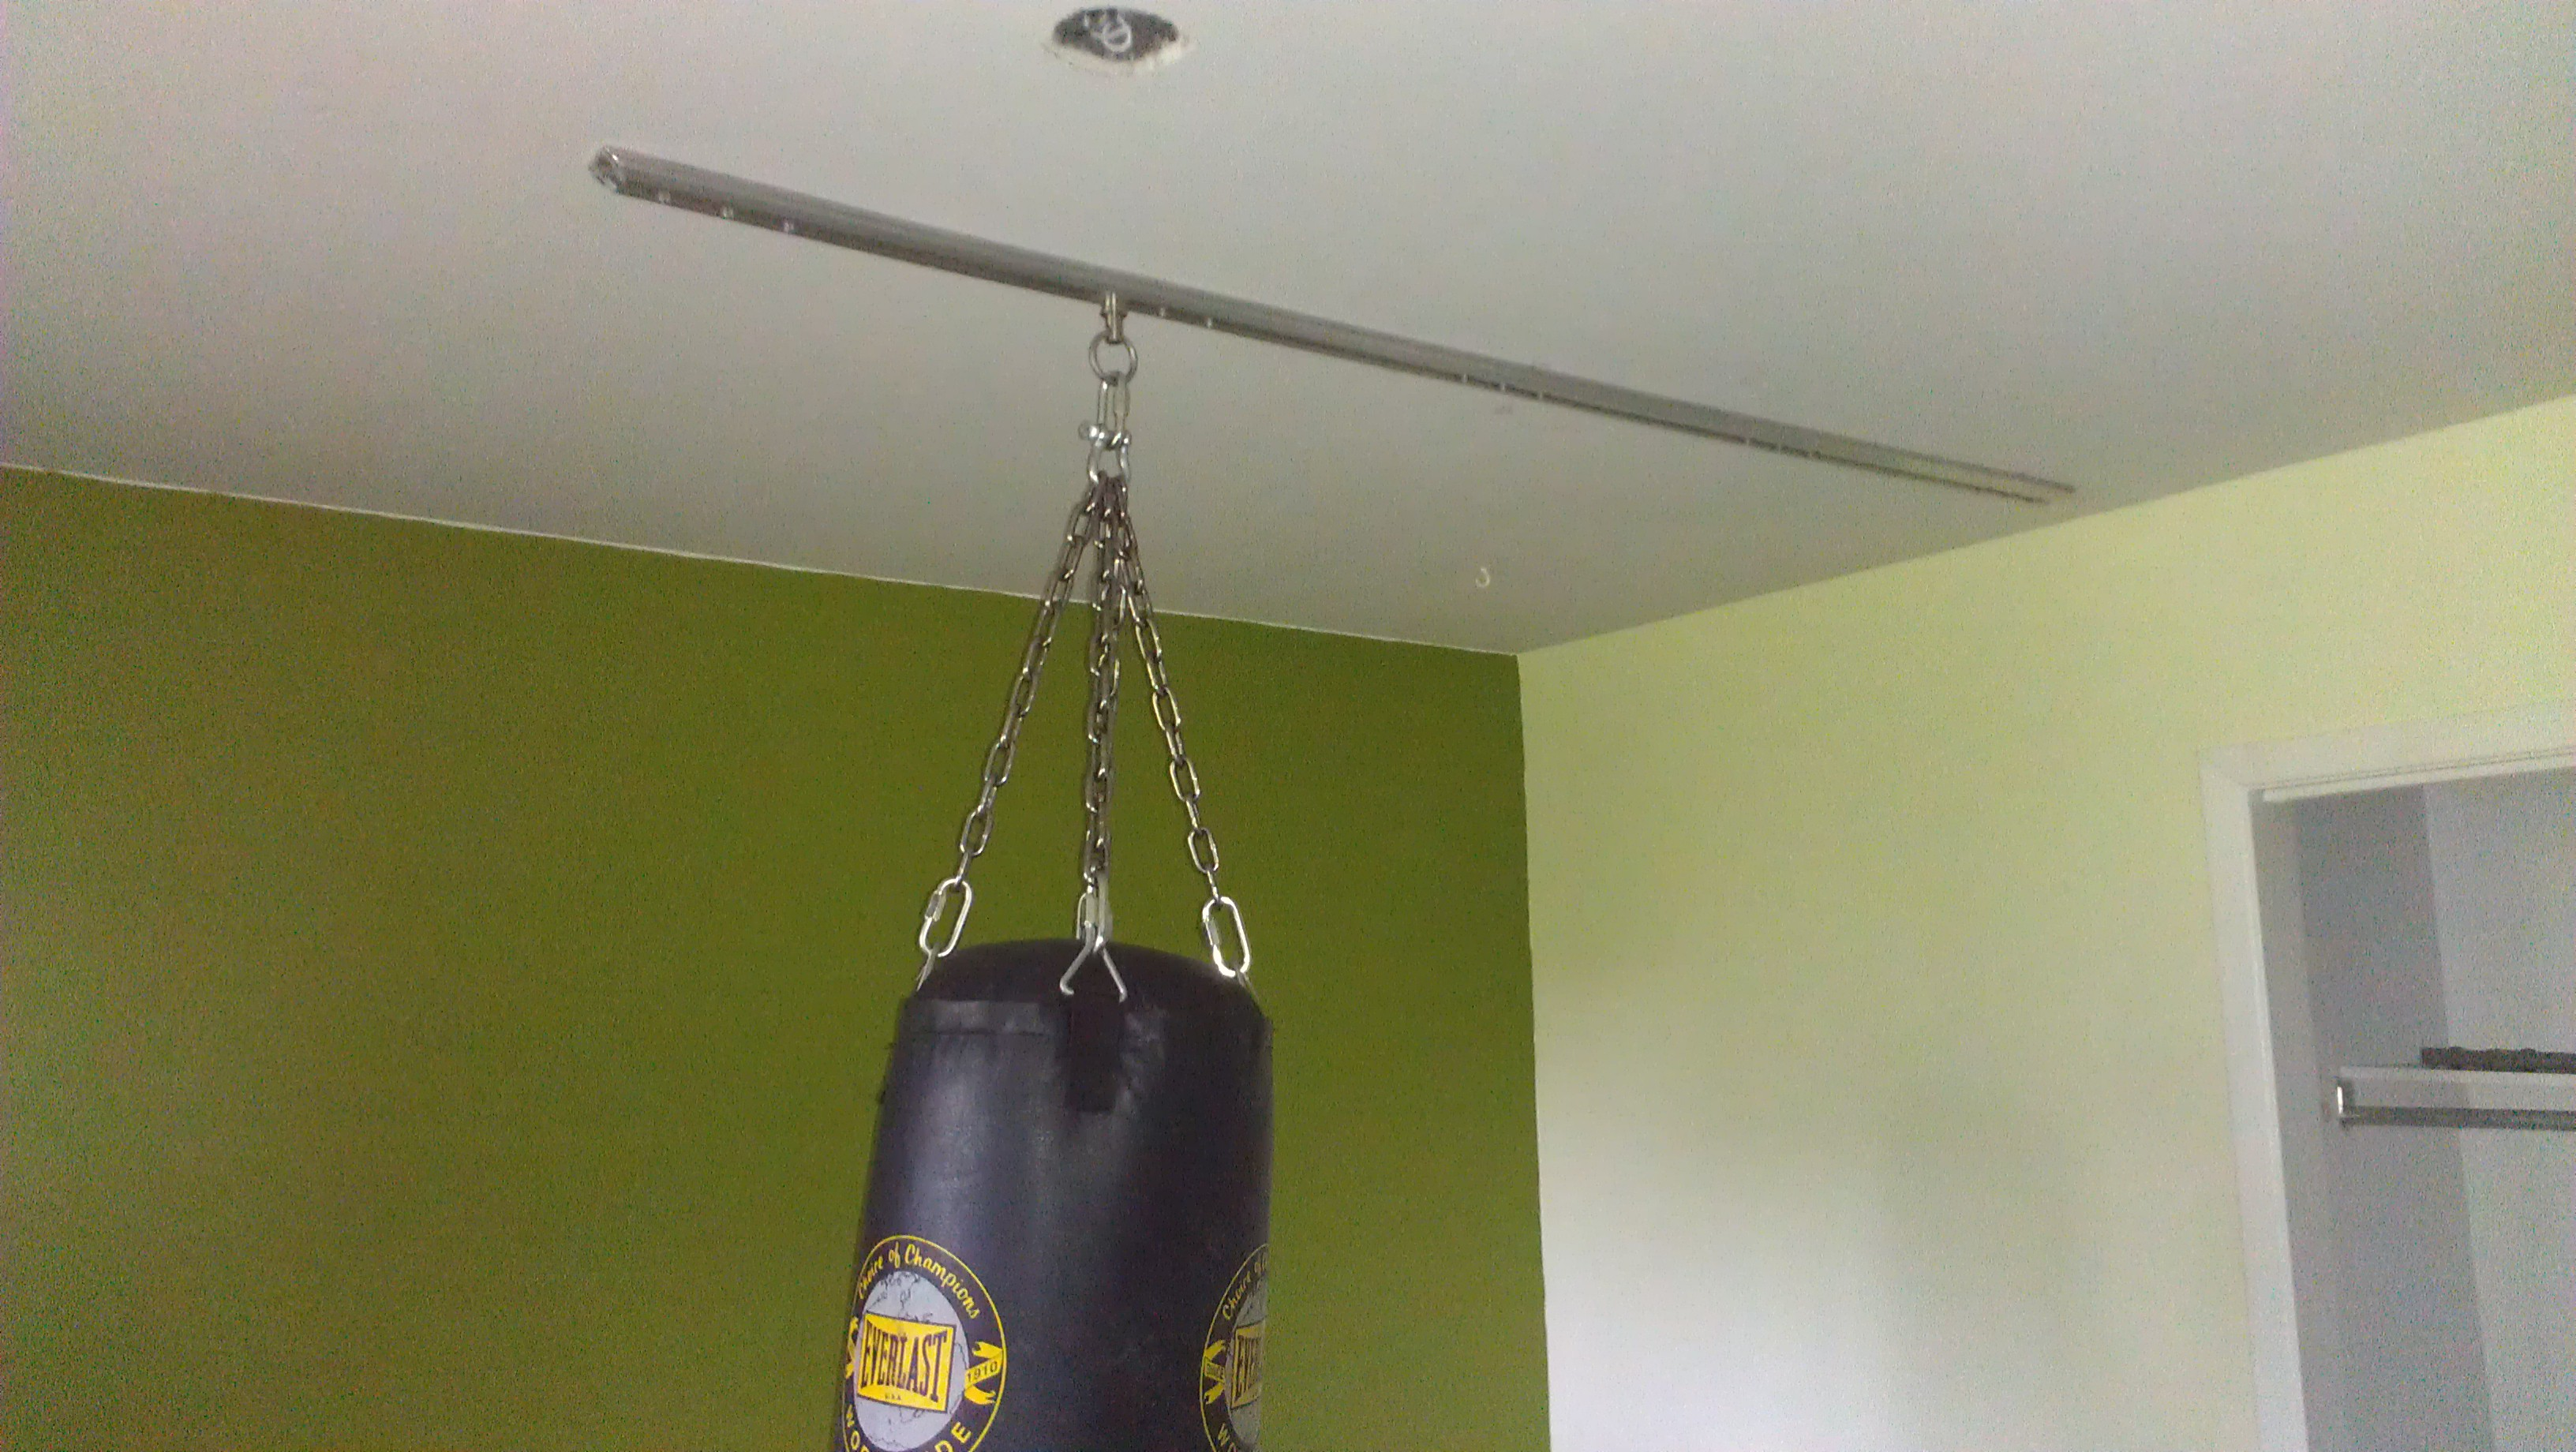 tuffrail collection » heavy bag - overhead homes » tuffrail